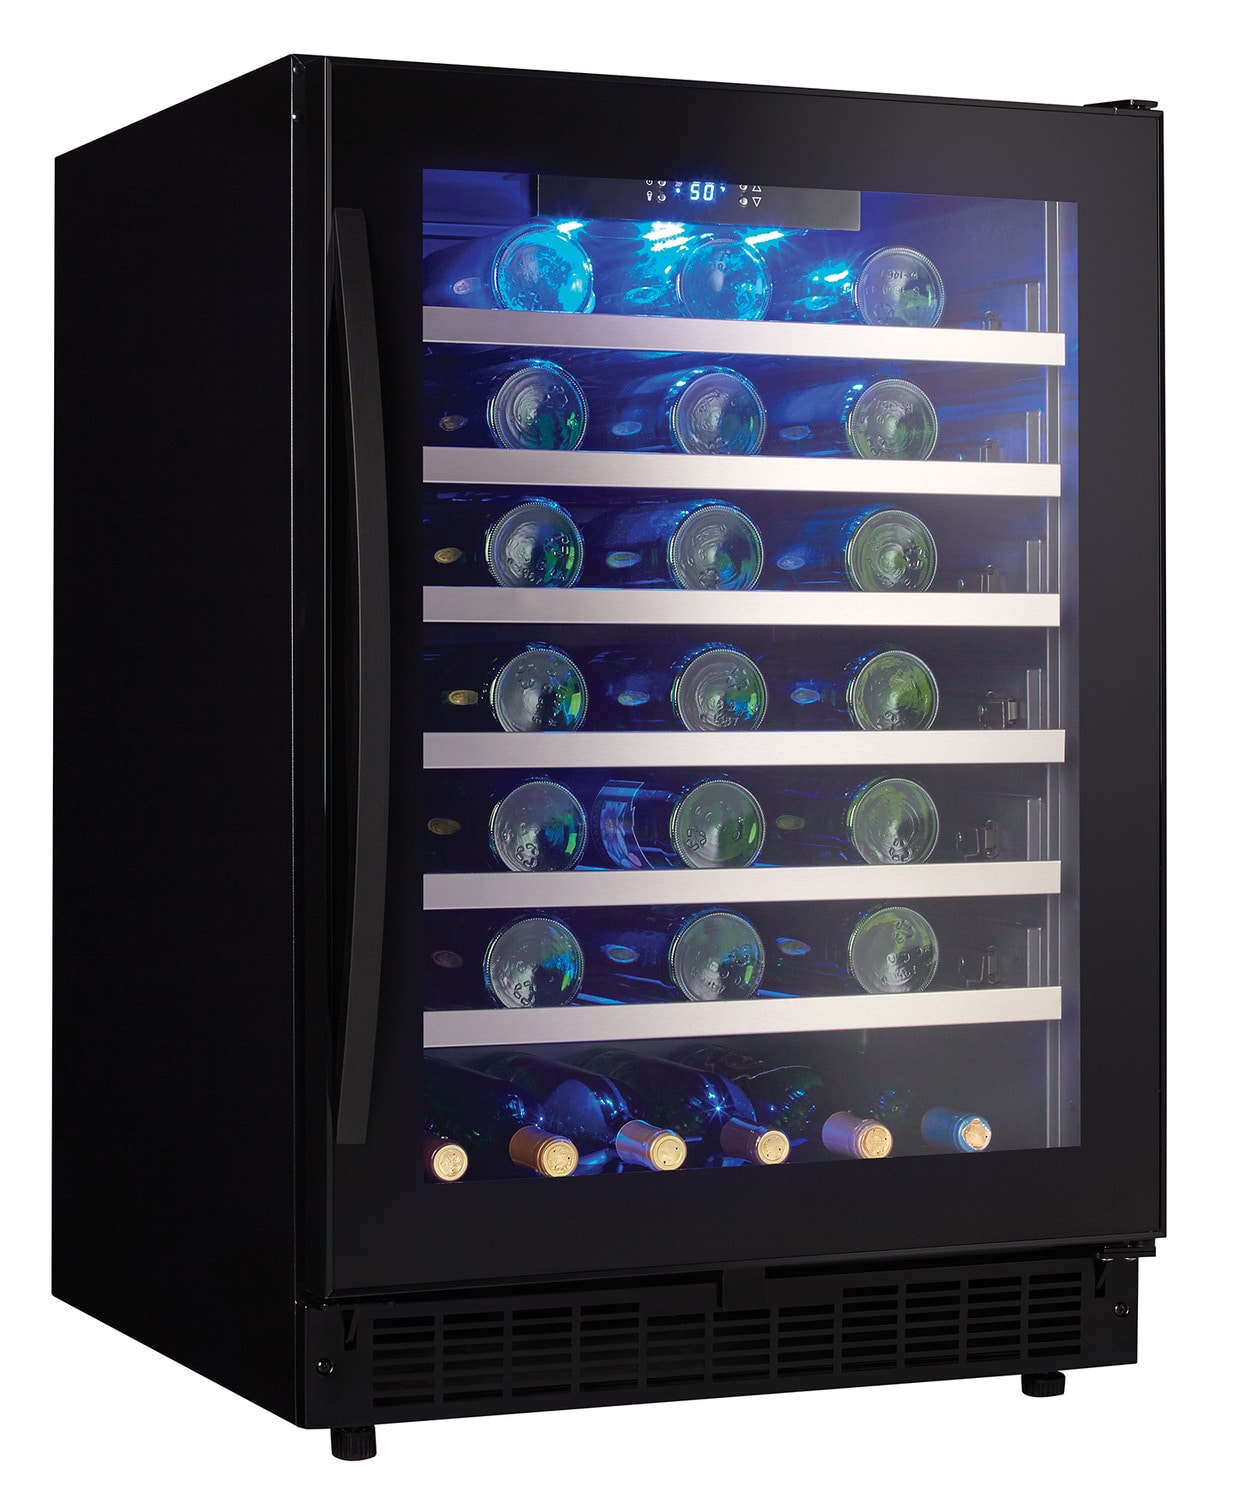 Refrigerators and Freezers - Danby Black Wine Cooler (5.6 Cu. Ft.) - SSWC056D1B